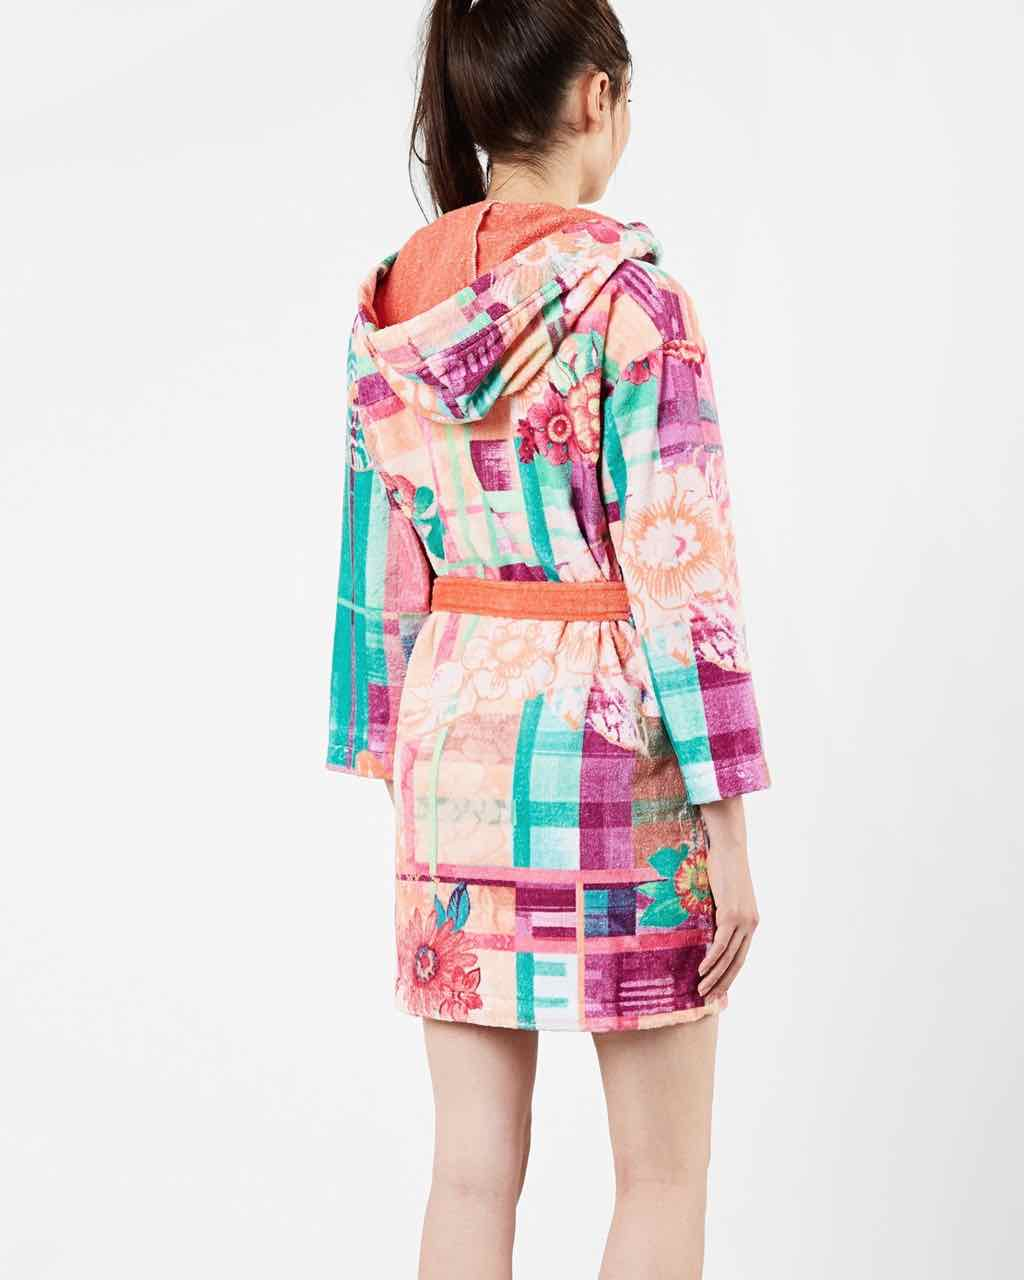 ff2e845602 DESIGUAL Bathrobe LOVE TARTAN 17WHBT5 Buy Online